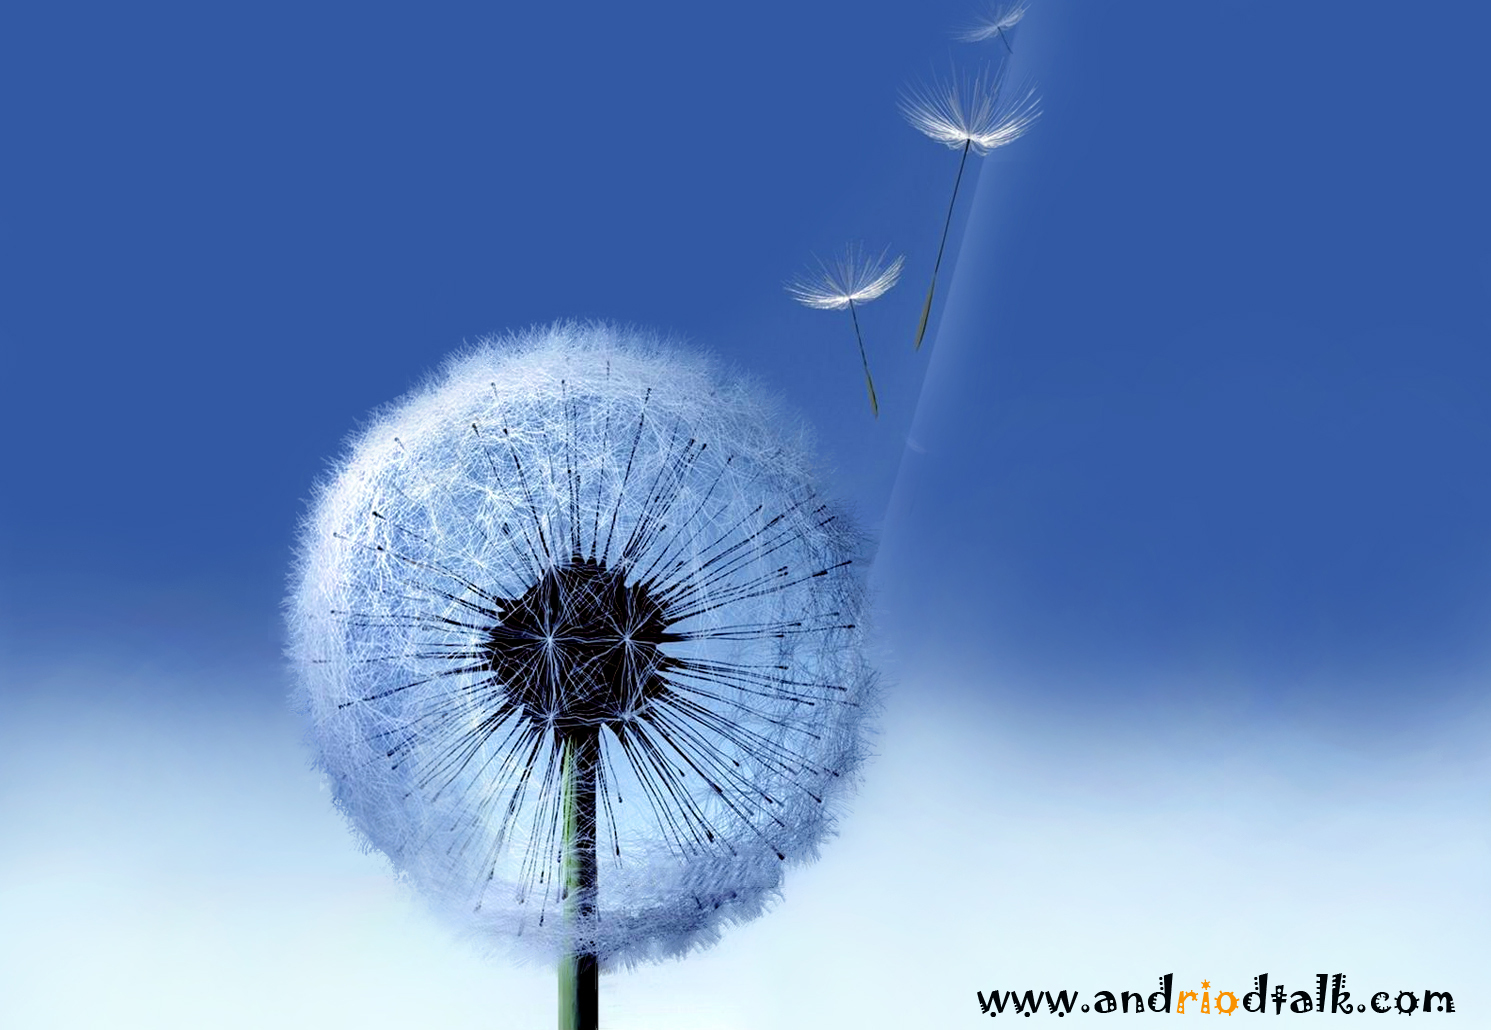 Dandelion live HD animated wallpaper android apk Android Talkative 1491x1030